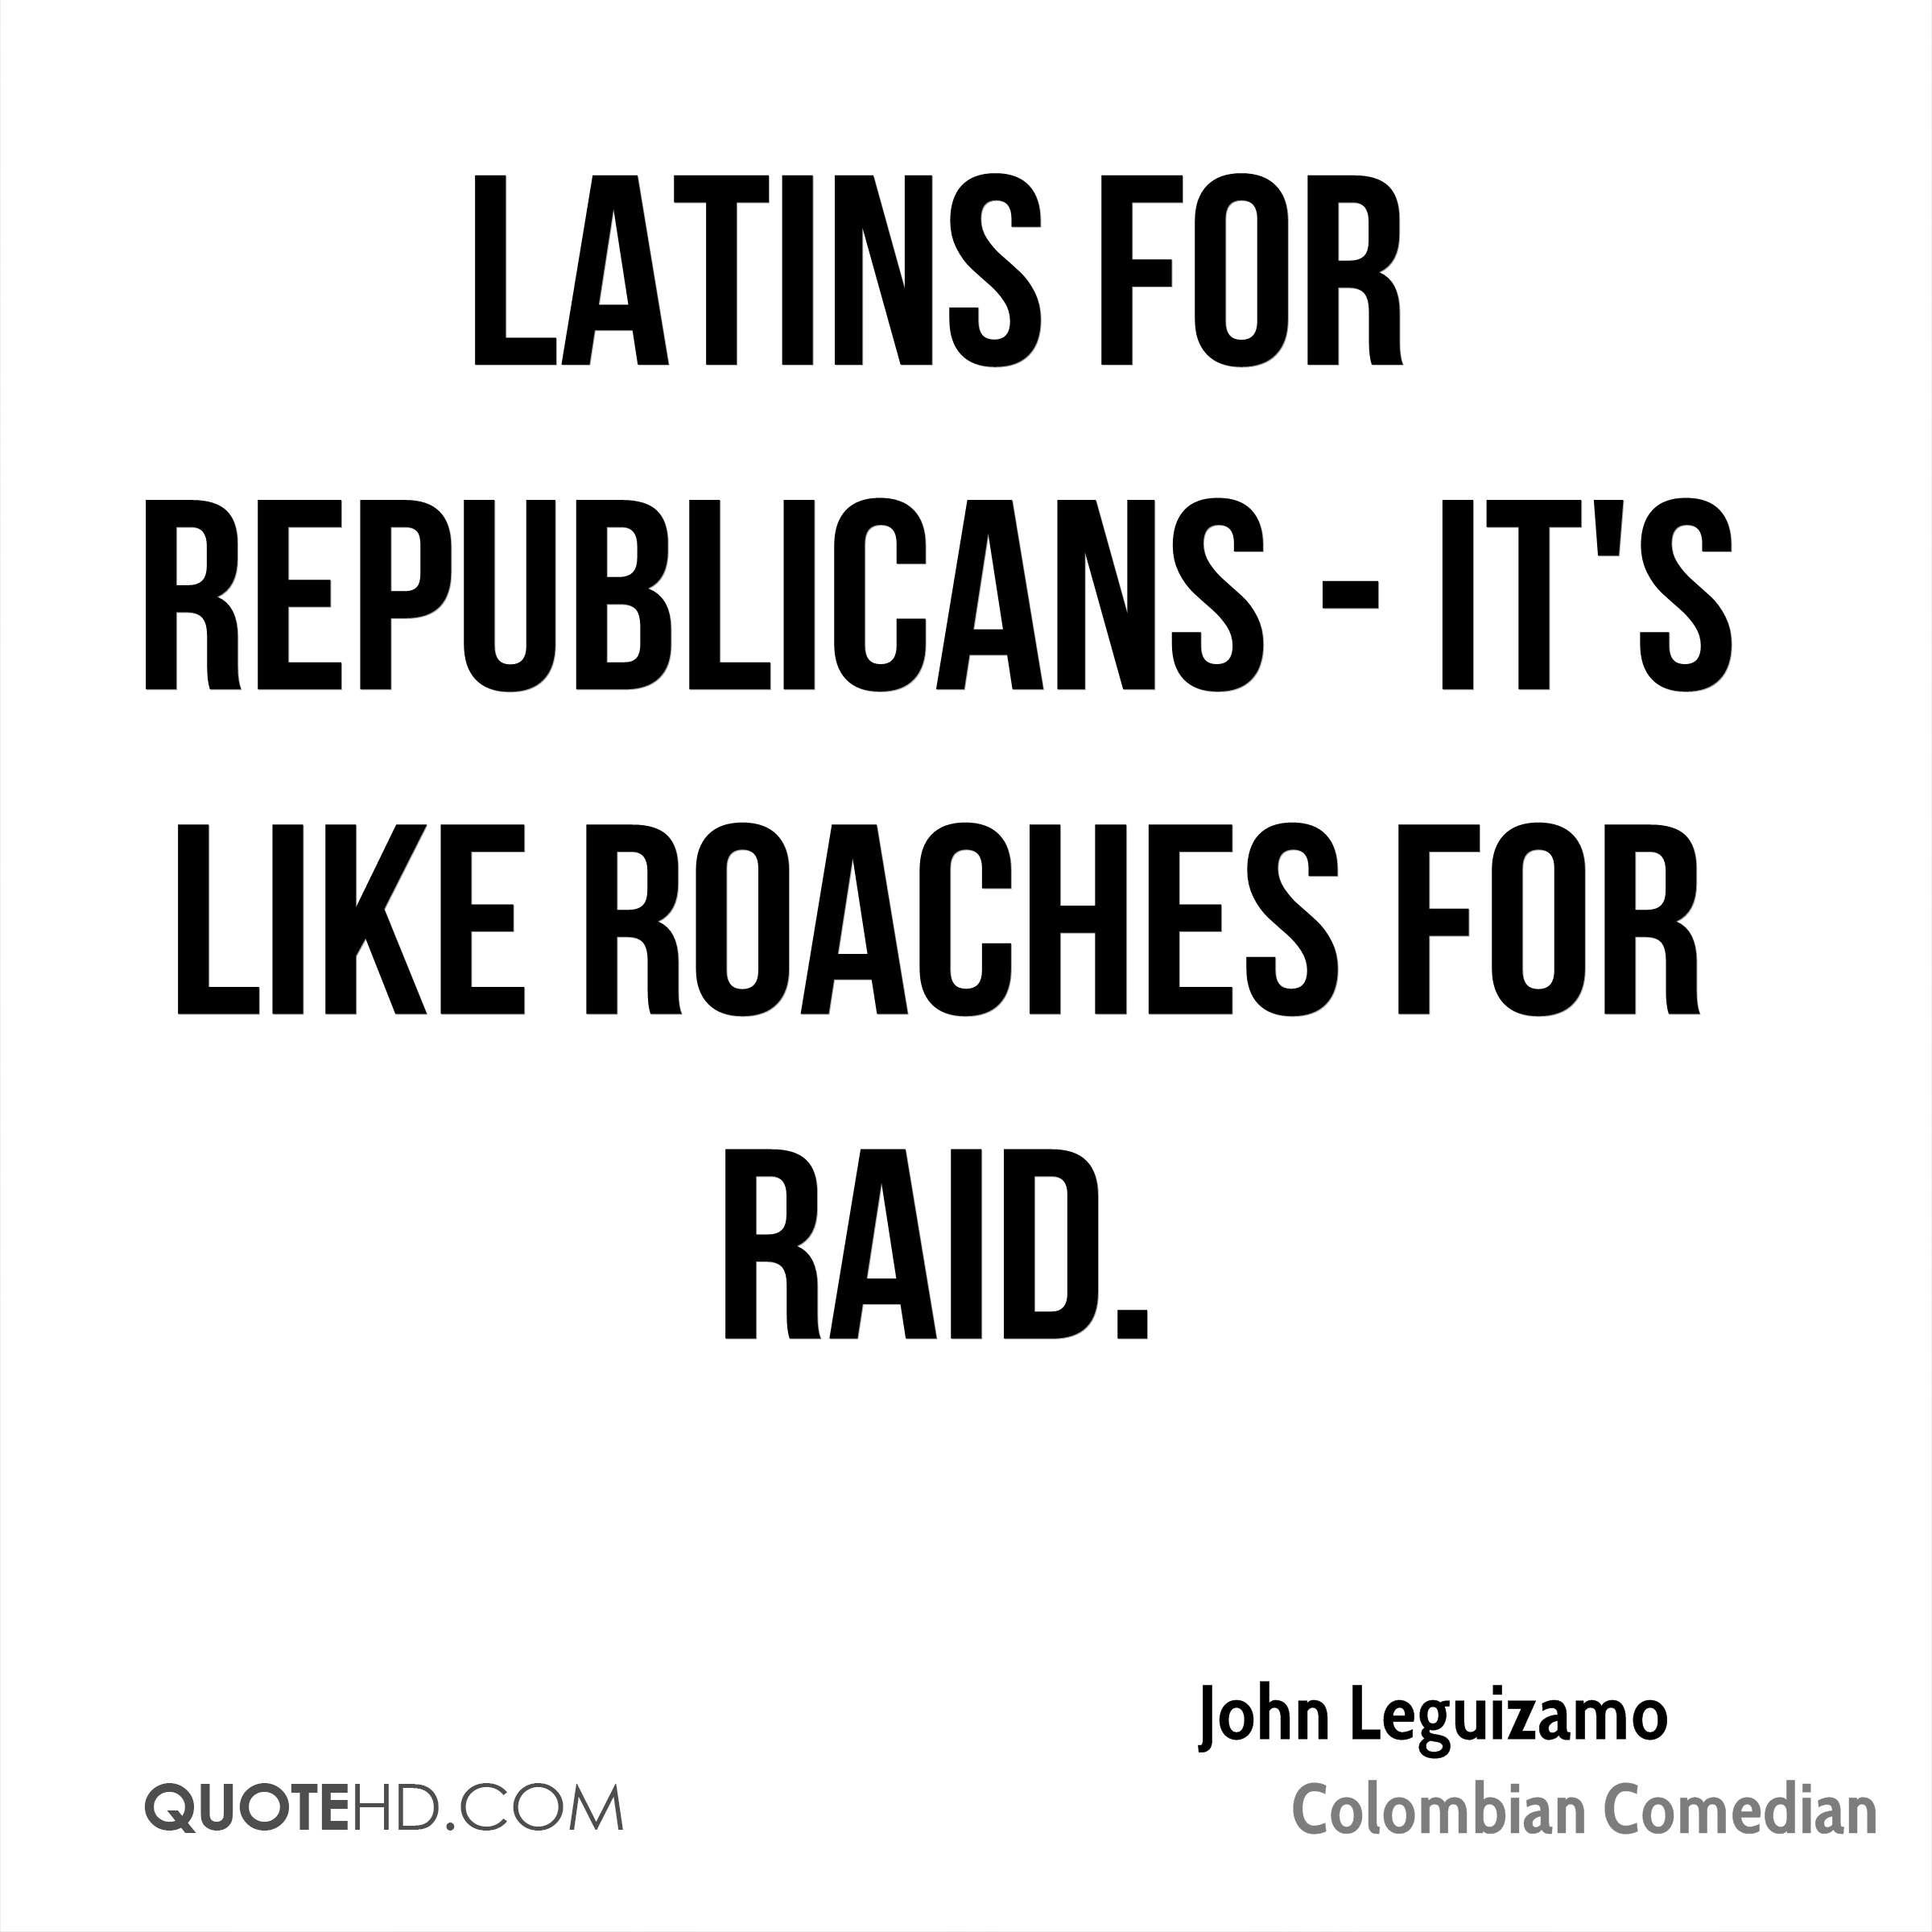 Latins for Republicans - it's like roaches for Raid.